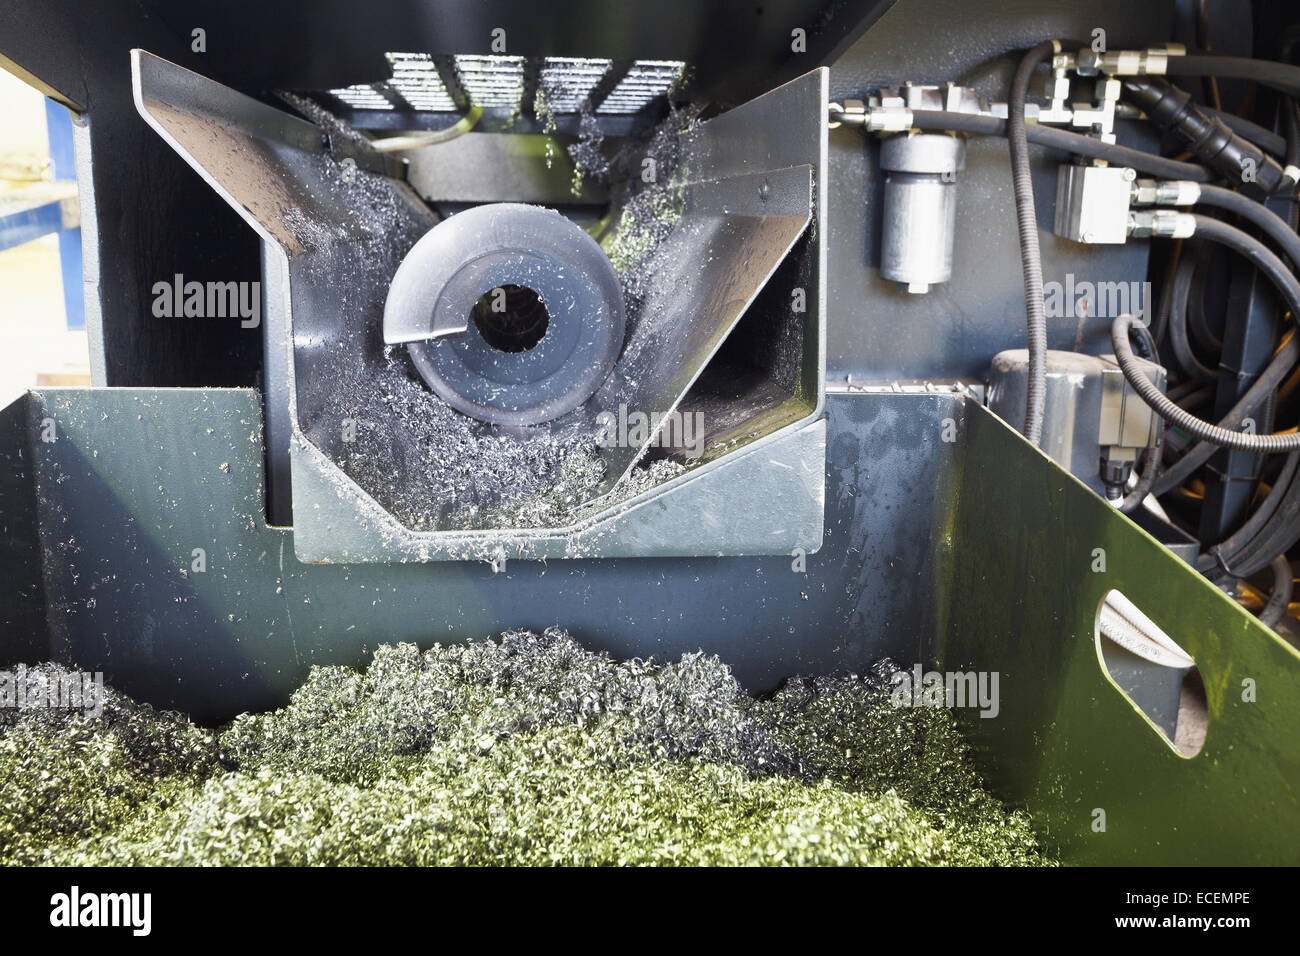 auger and metal turnings from lathe machine close up - Stock Image